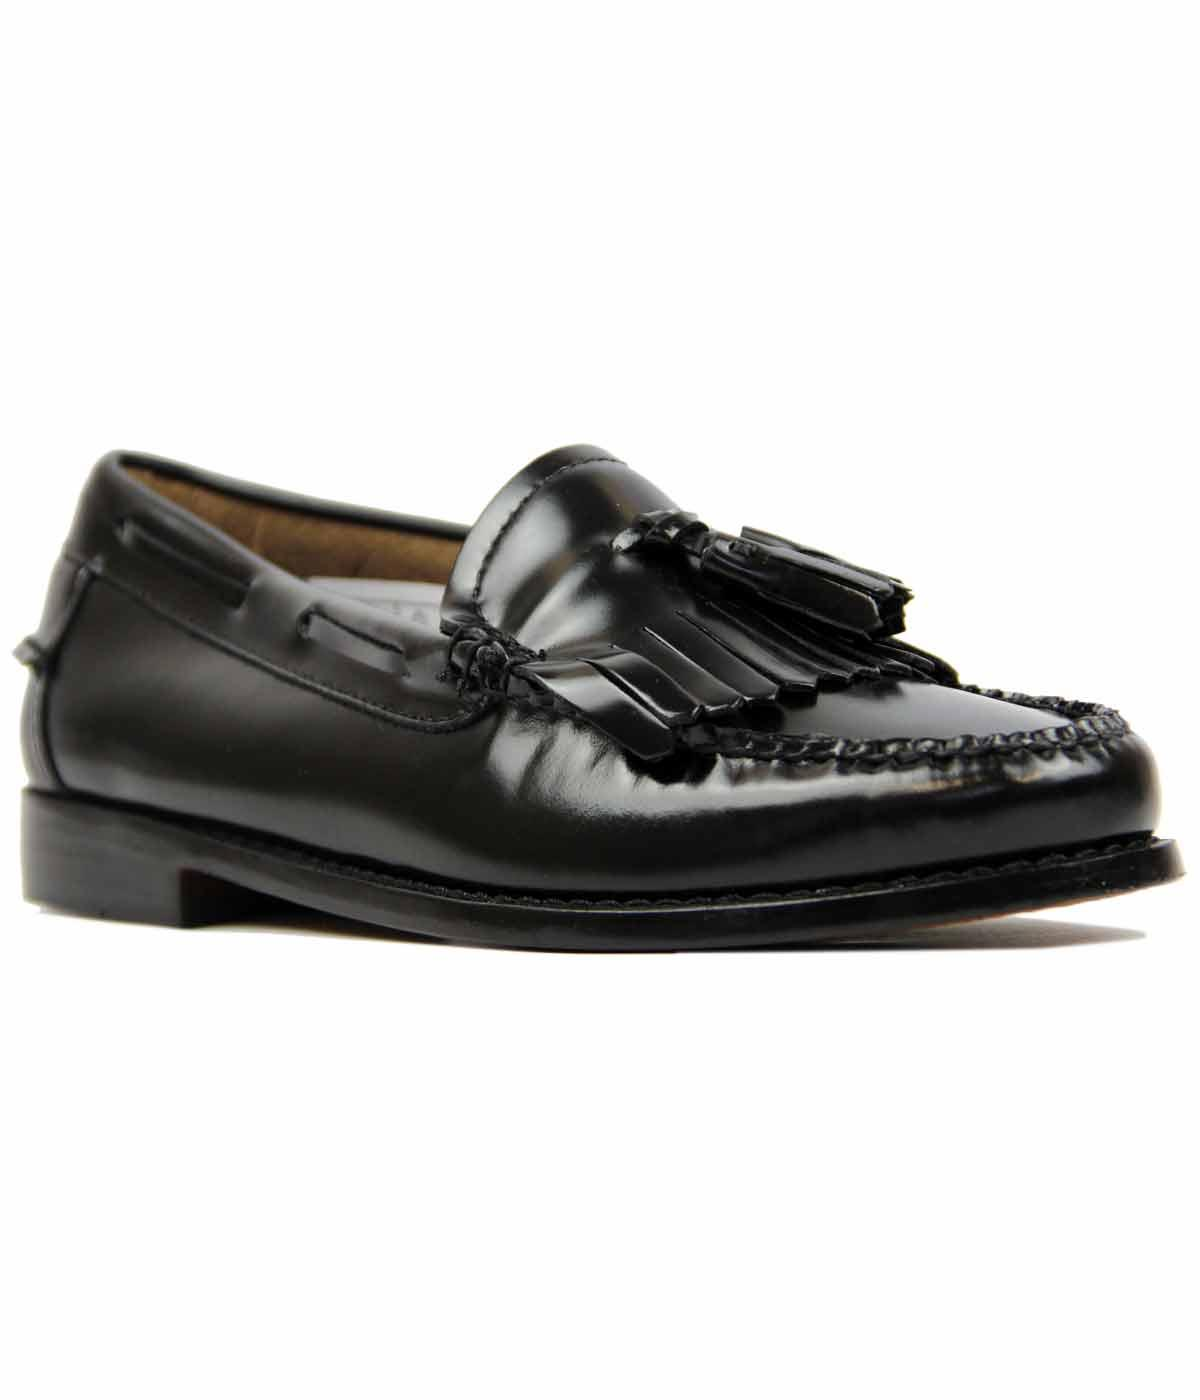 Esther BASS WEEJUNS Retro Mod 60s Kilted Loafer